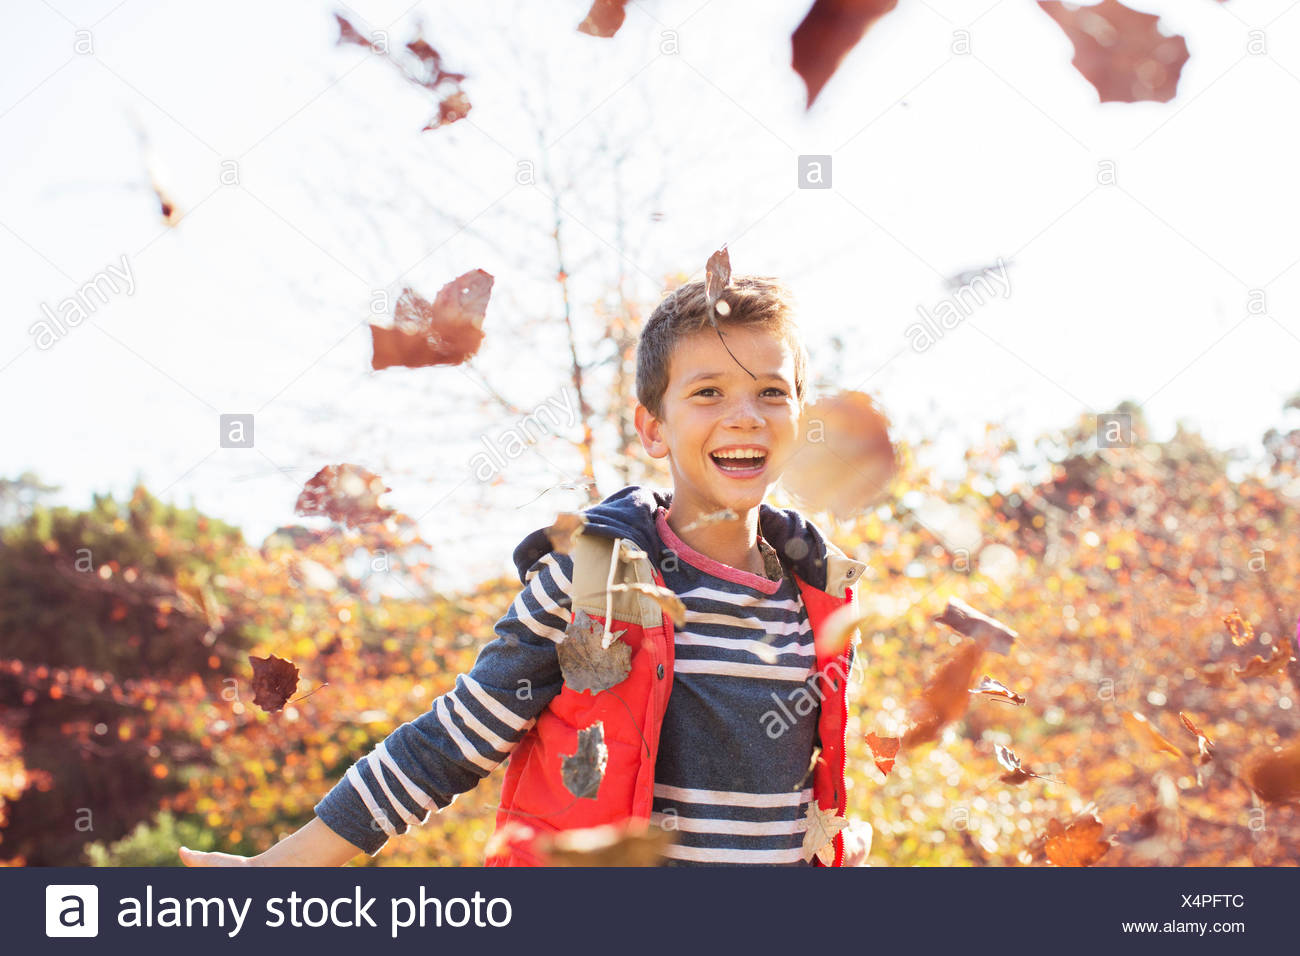 Portrait of enthusiastic boy throwing autumn leaves - Stock Image